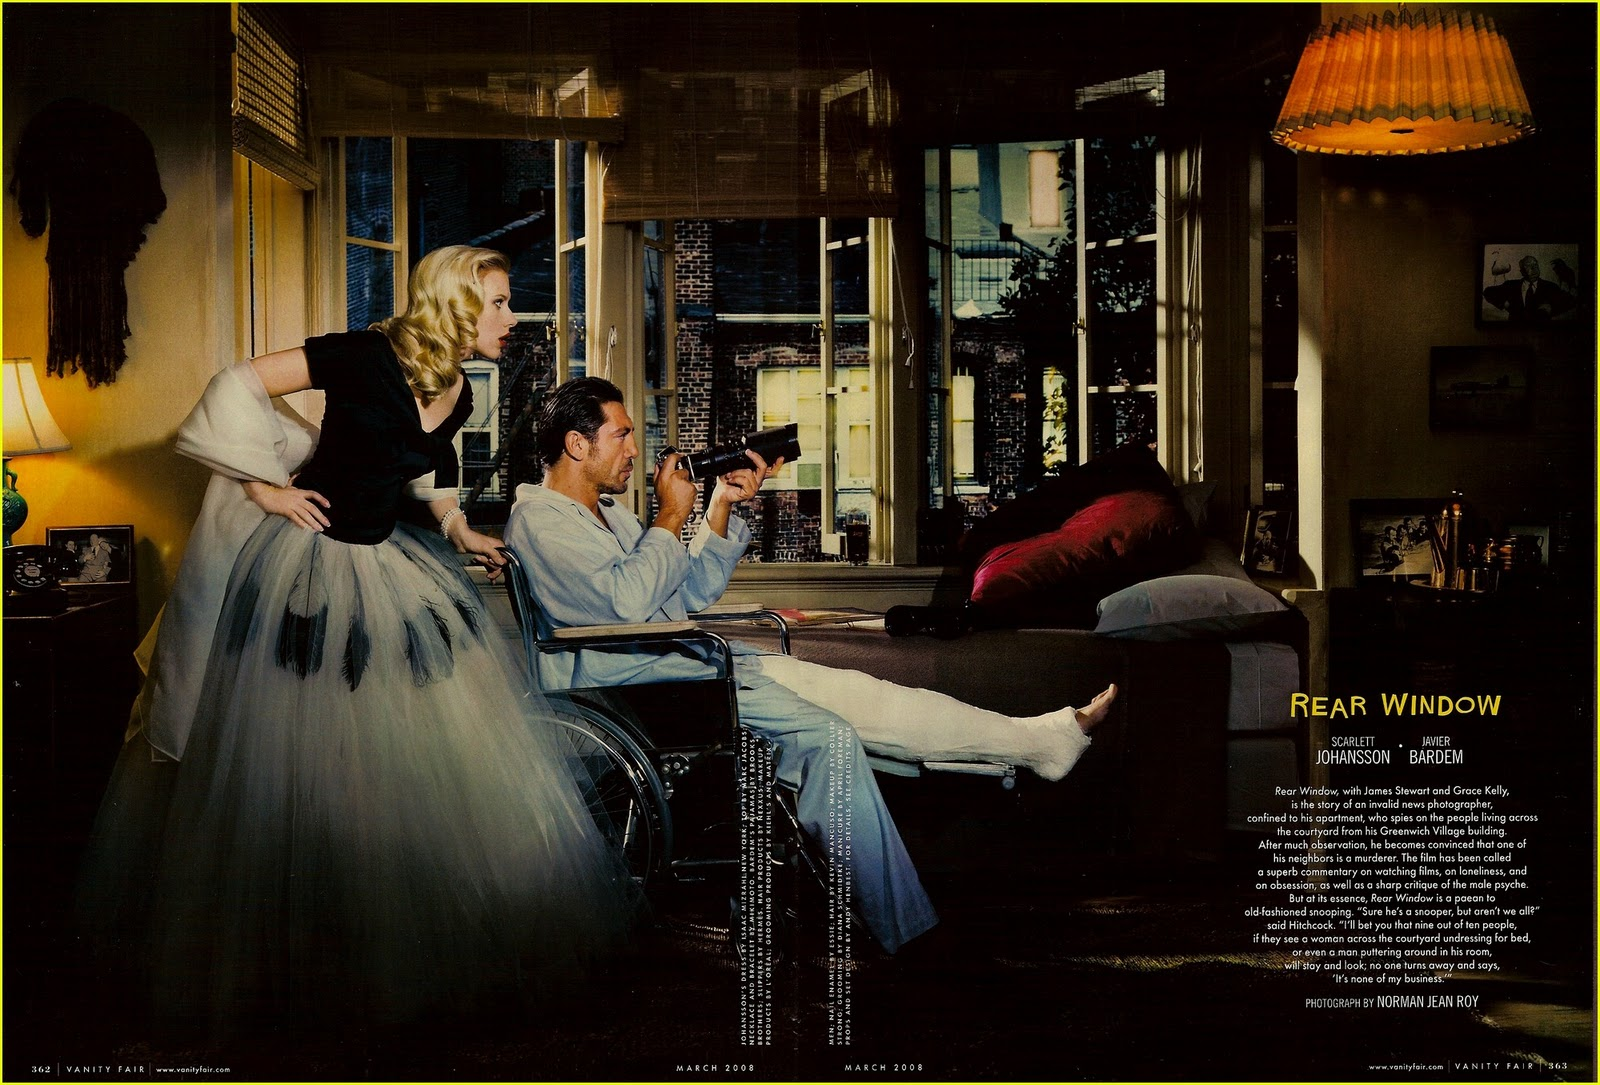 http://4.bp.blogspot.com/-NrKRyI4f3Os/TWcGCKvqc0I/AAAAAAAAAOo/Y28joZyXhcs/s1600/vanity-fair-hollywood-issue-2008-11.jpg